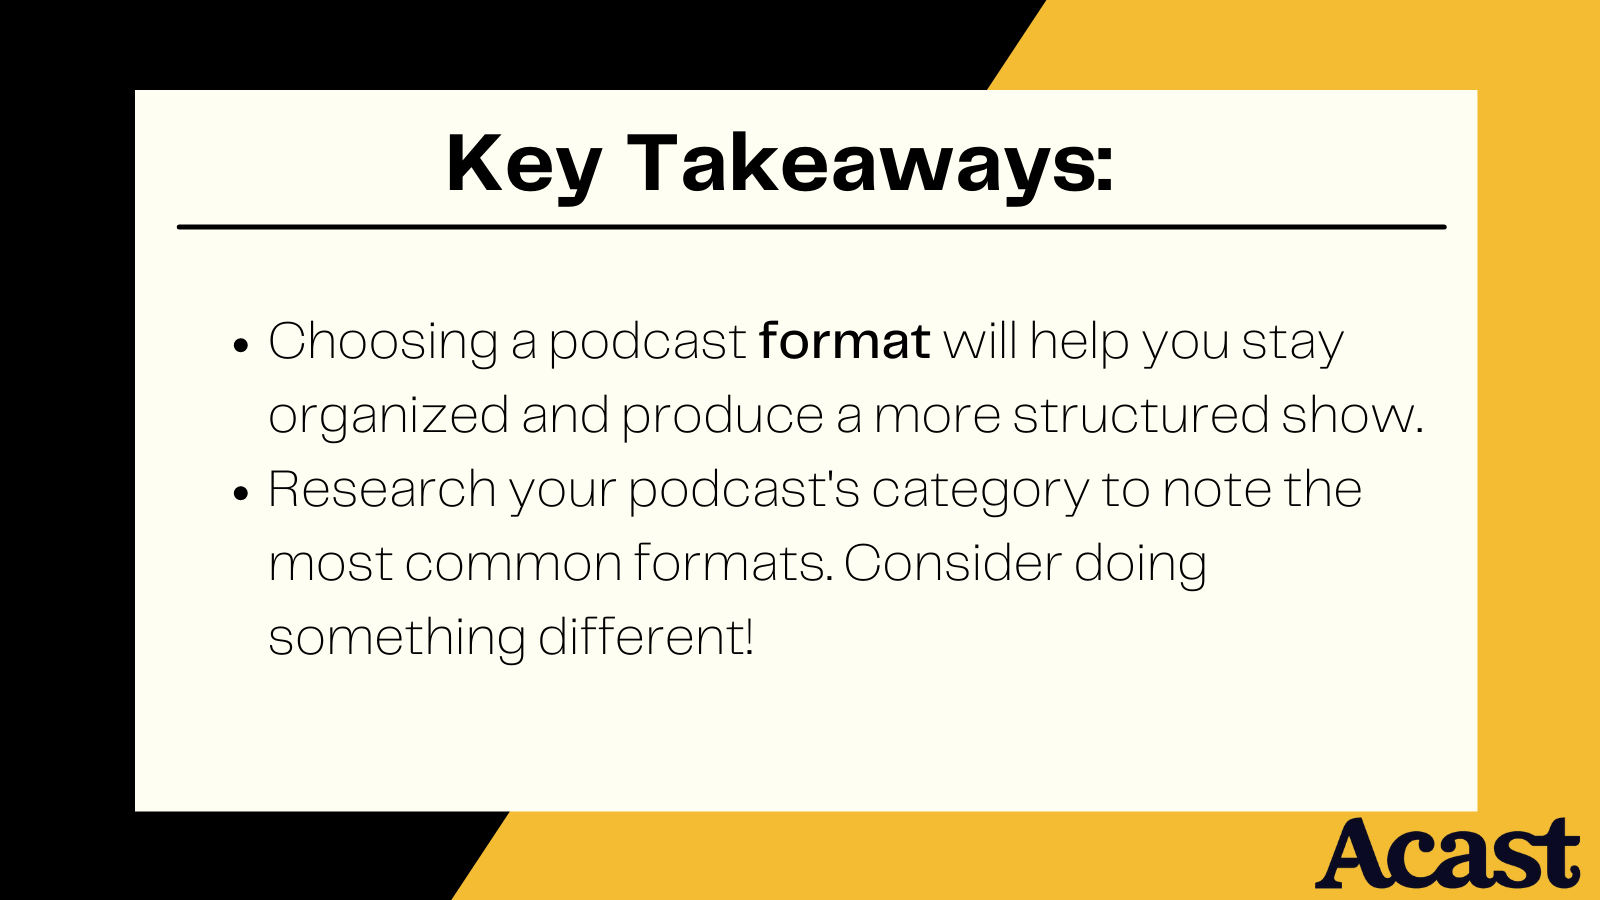 two key takeaways for choosing a format when starting a podcast